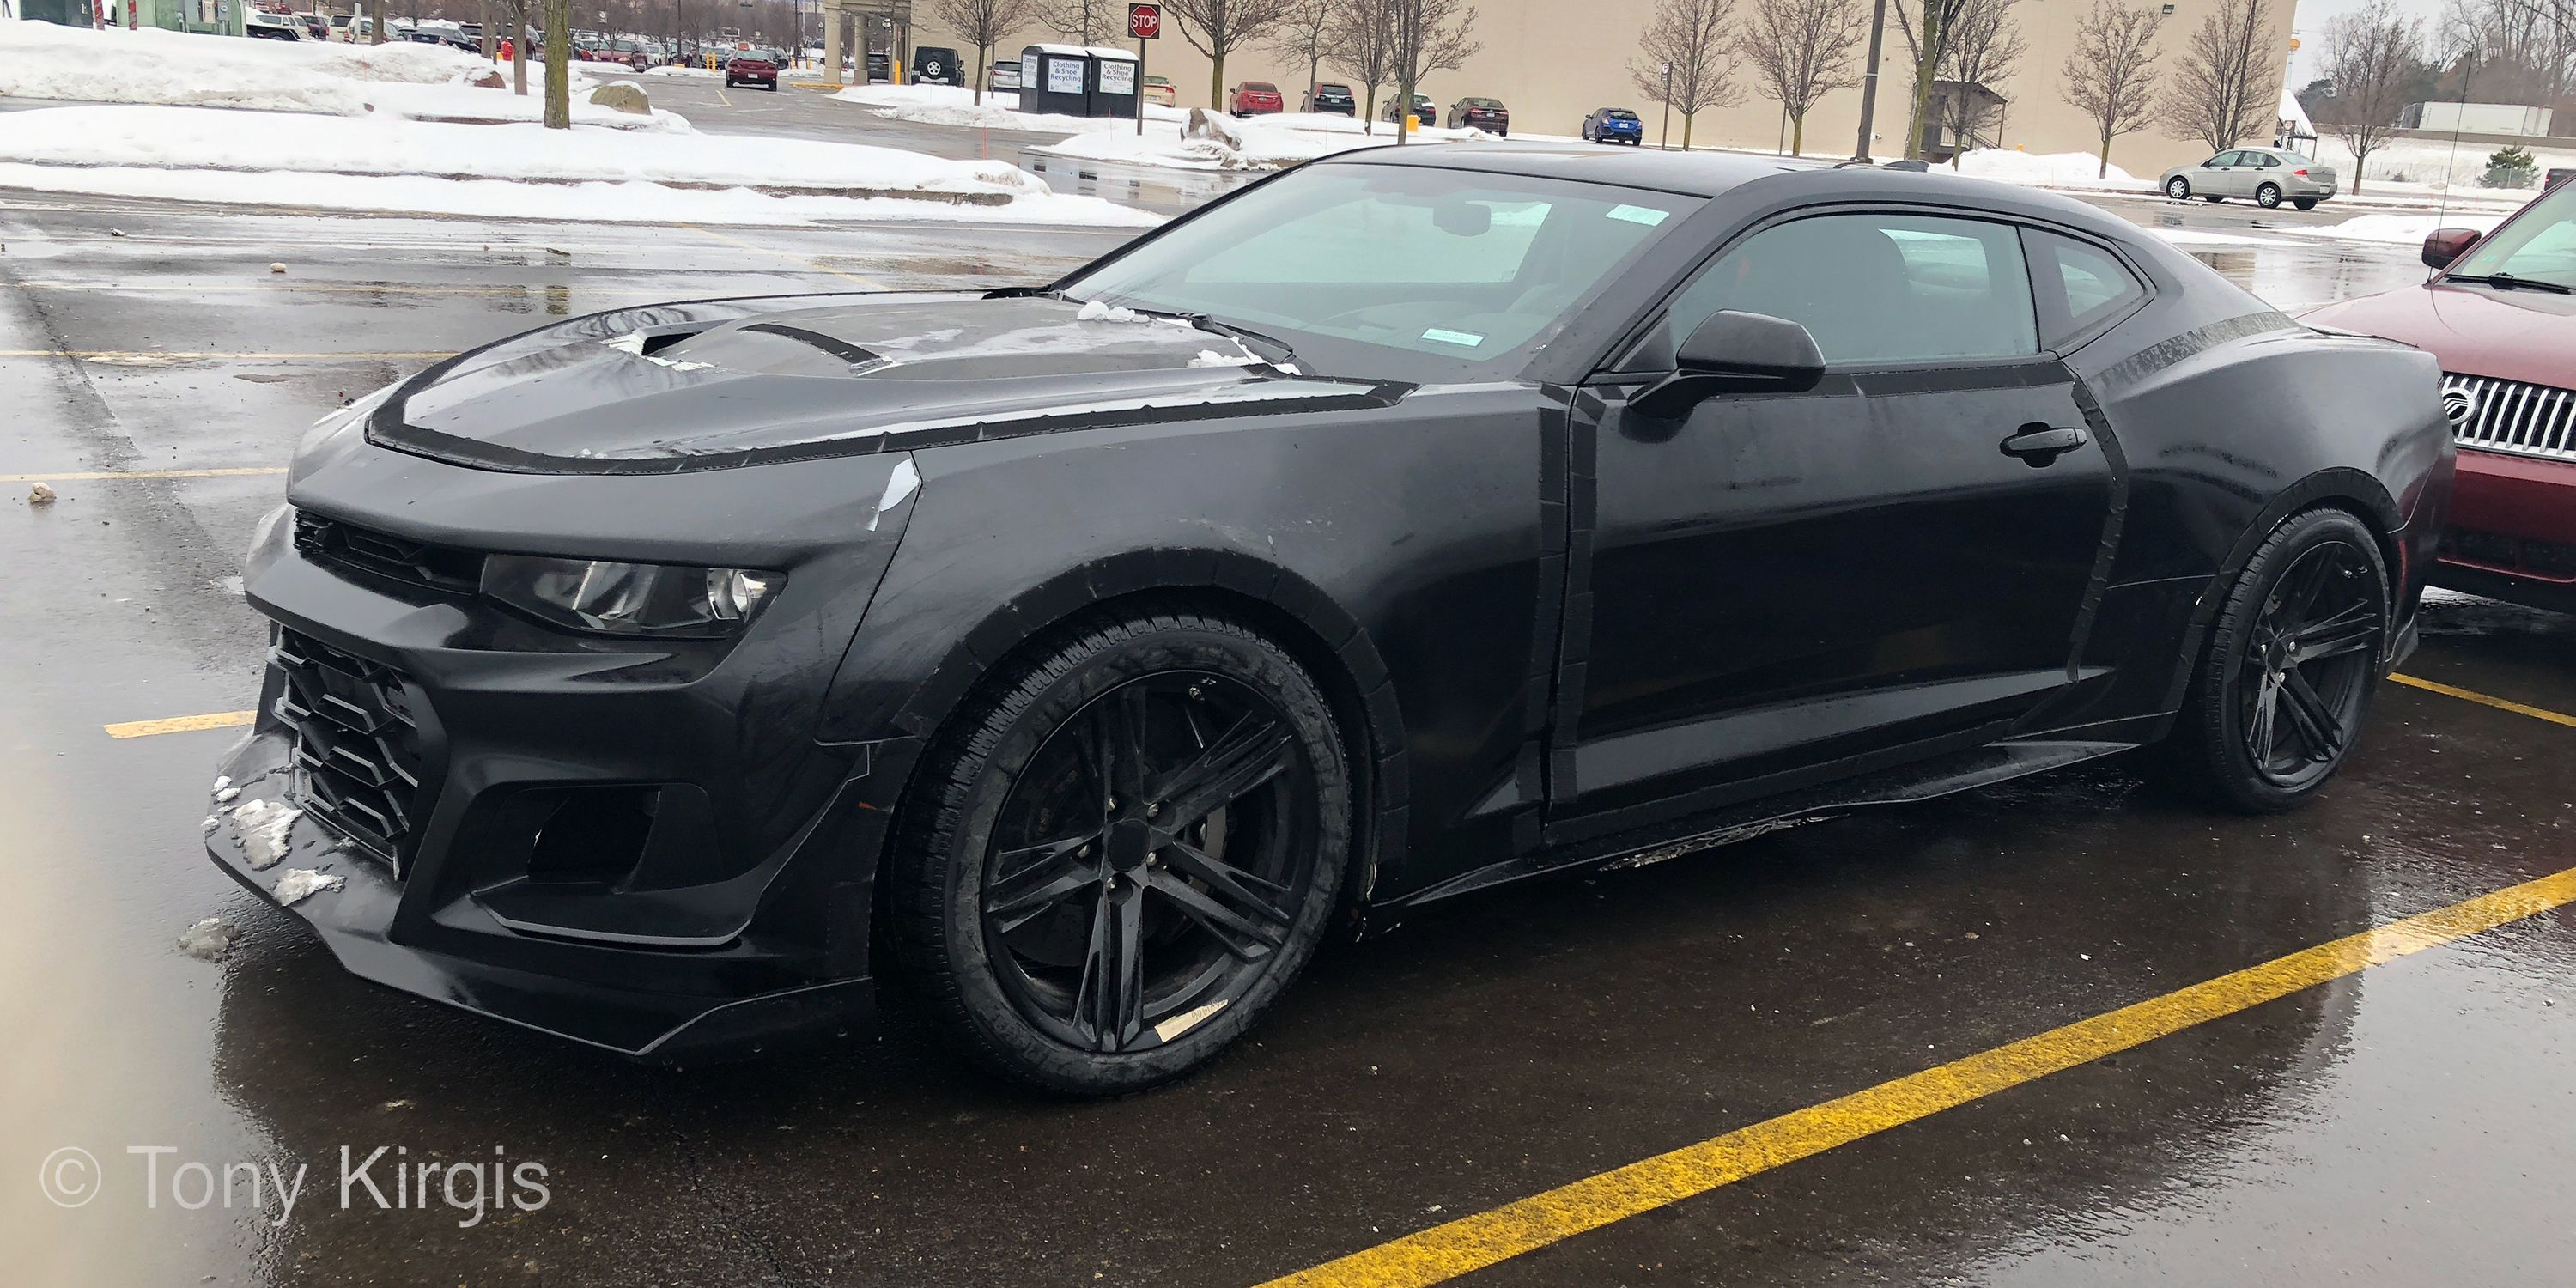 What Is This Carbon-Brake-Equipped Camaro Prototype?